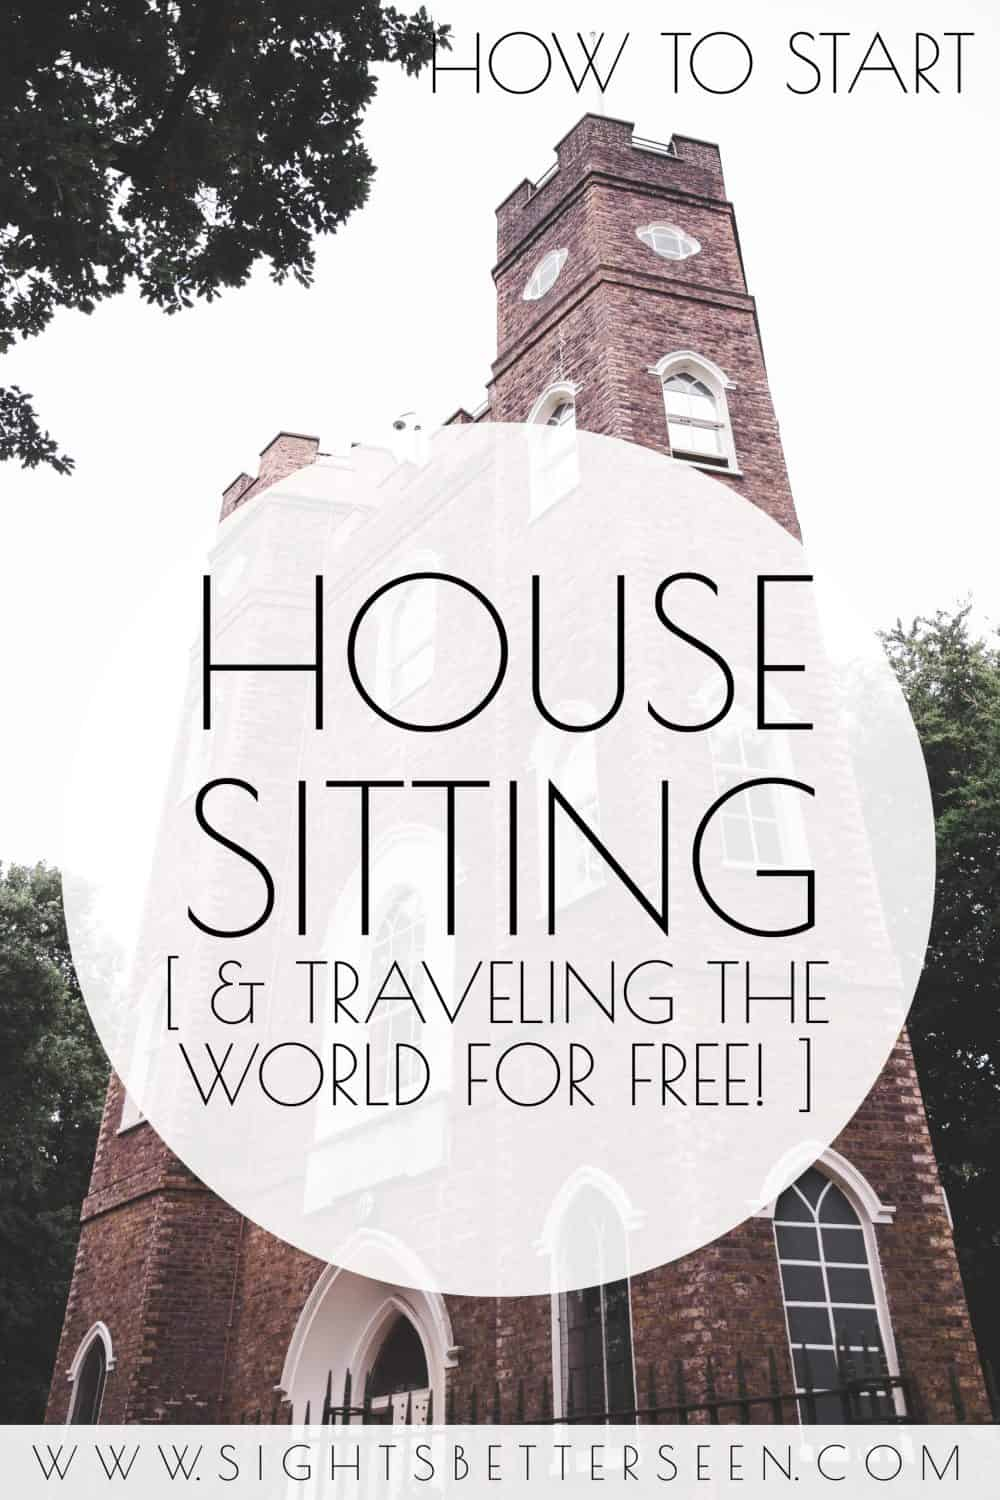 House sitting can get you free accommodation when you travel! I use Trusted Housesitters to find lots of house sitting jobs and will give you the tips you need to land your first house sit in this article!